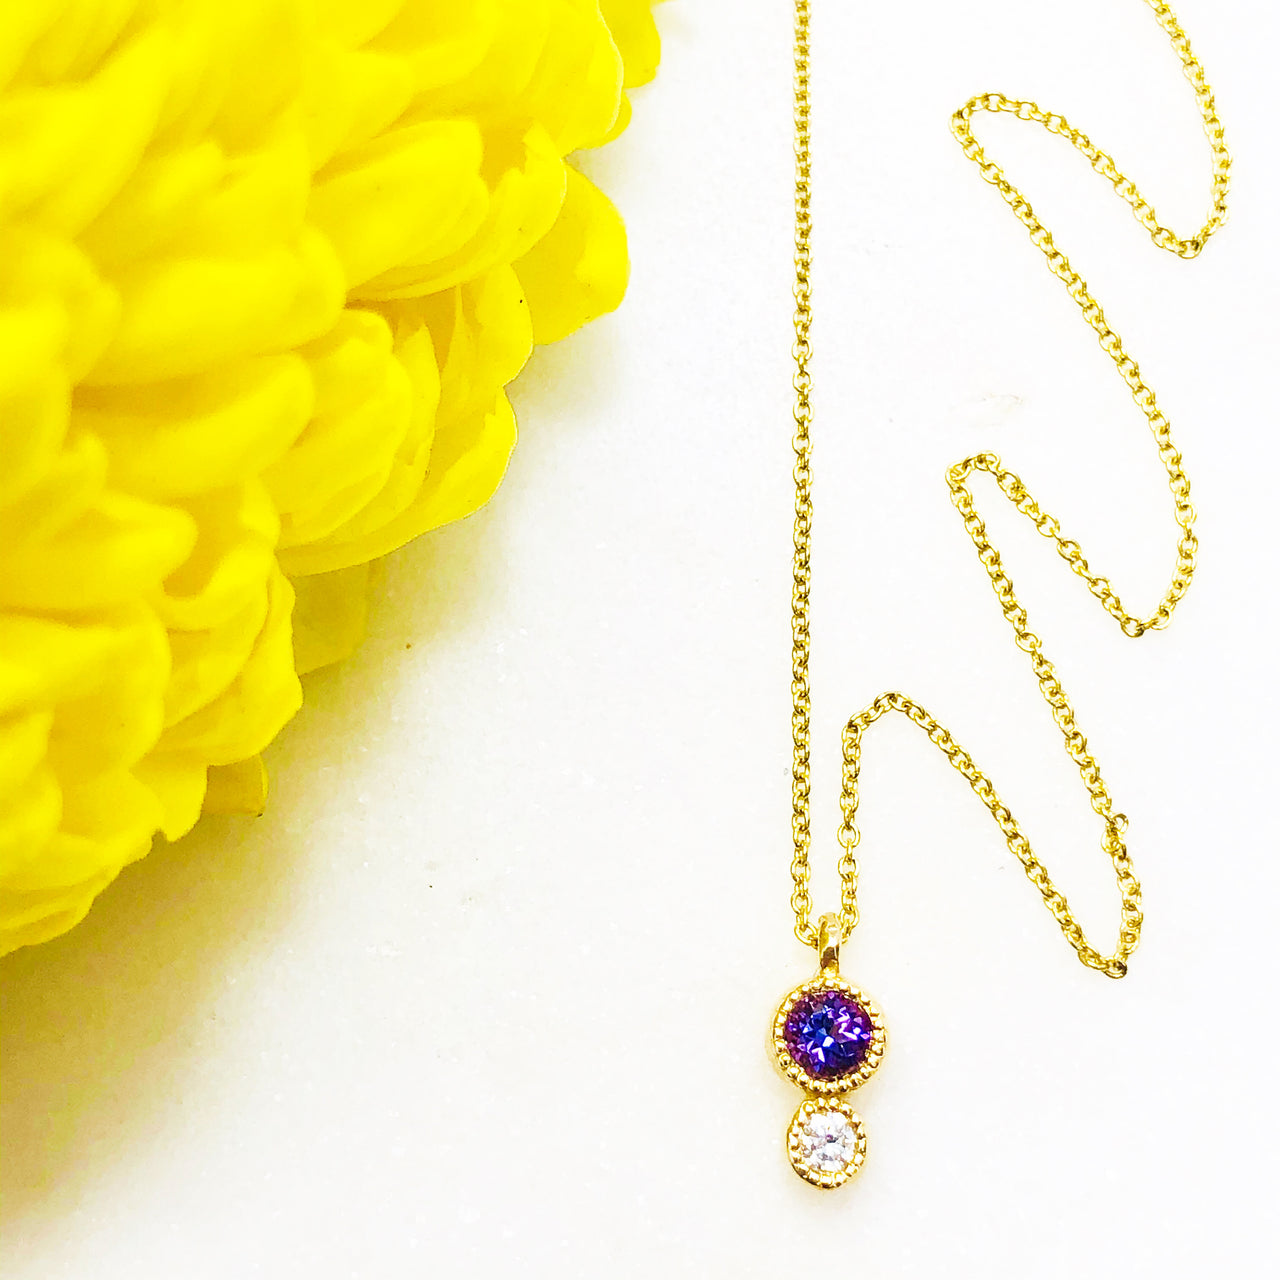 14K Yellow Gold Amethyst and Diamond Necklace.